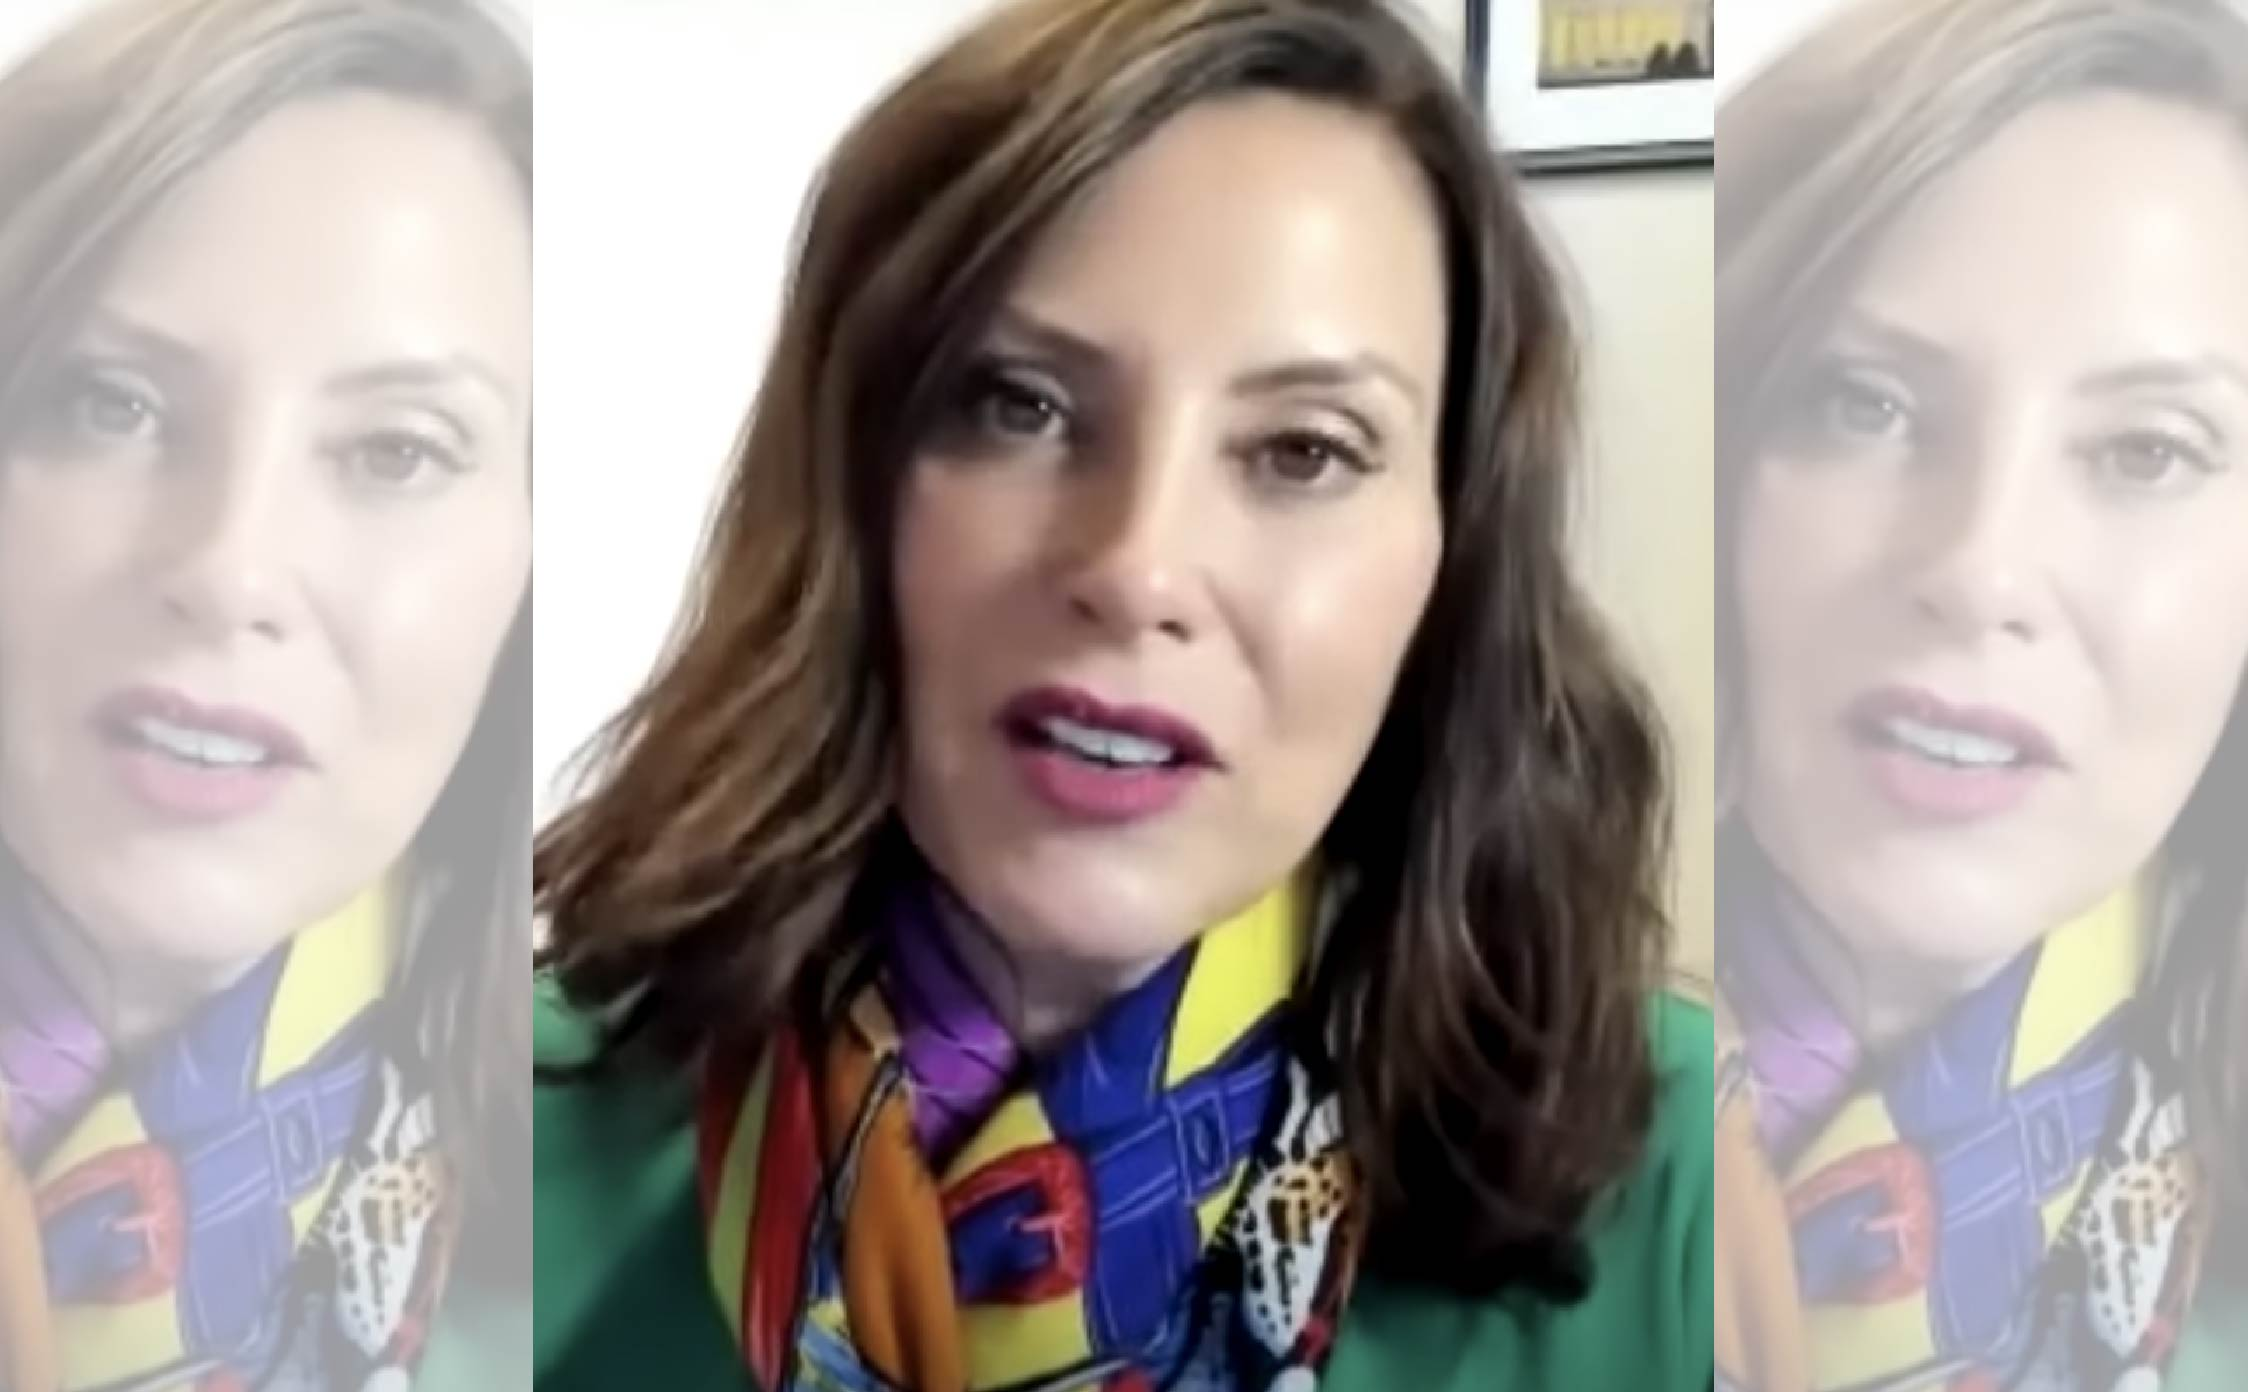 The Walls Are Not Just Caving-in on Gretchen Whitmer, They're Actually Crumbling...